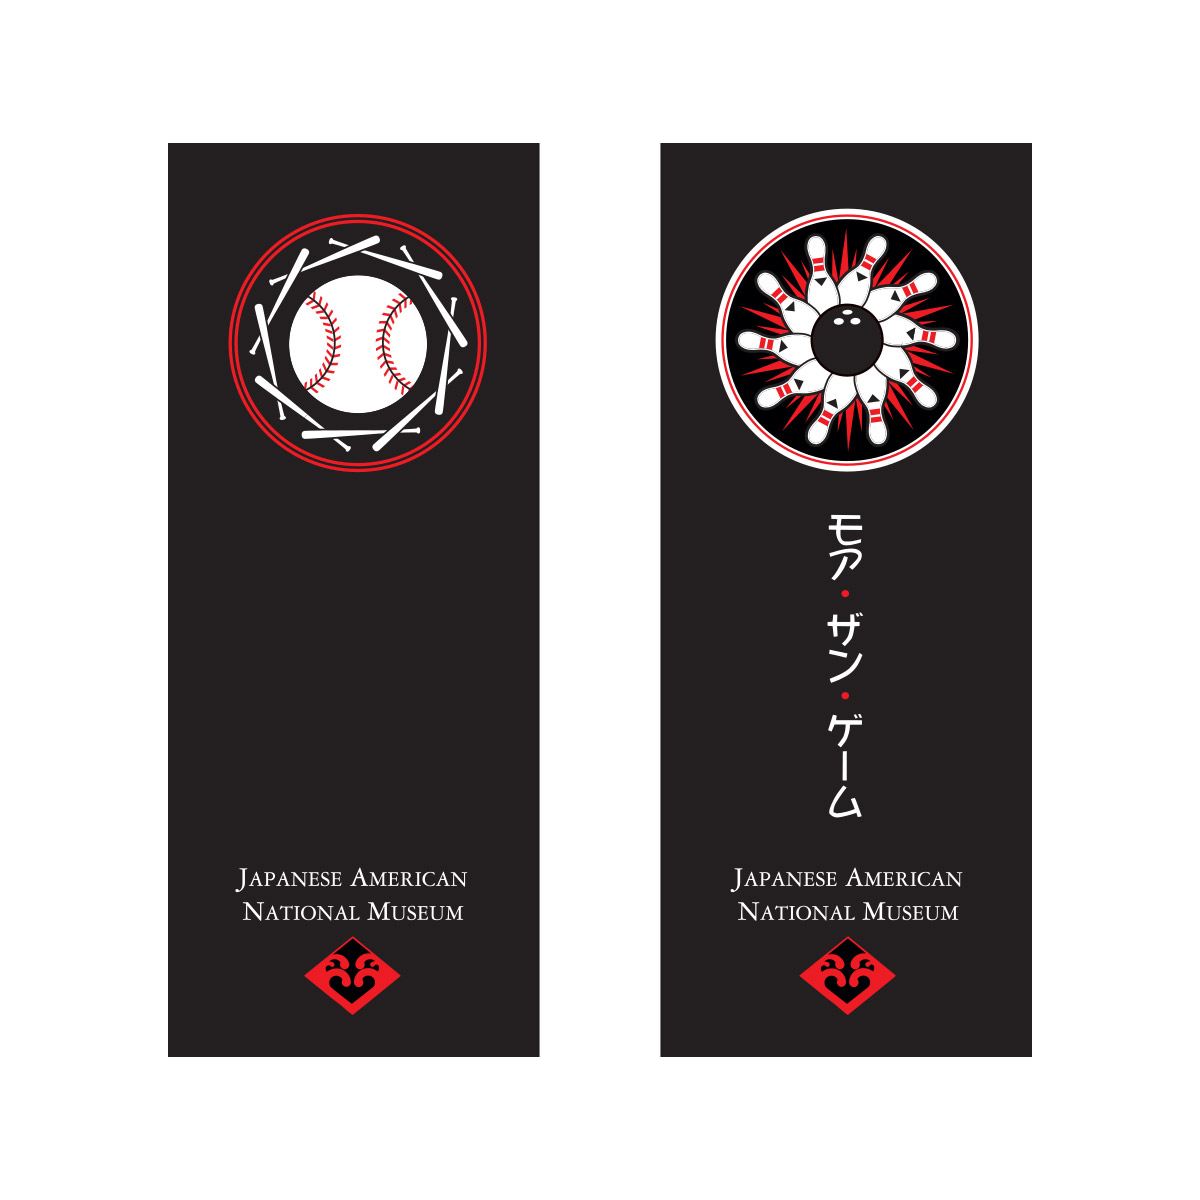 Mon (crests) designed for museum baseball and bowling shirts for a sports related exhibition.